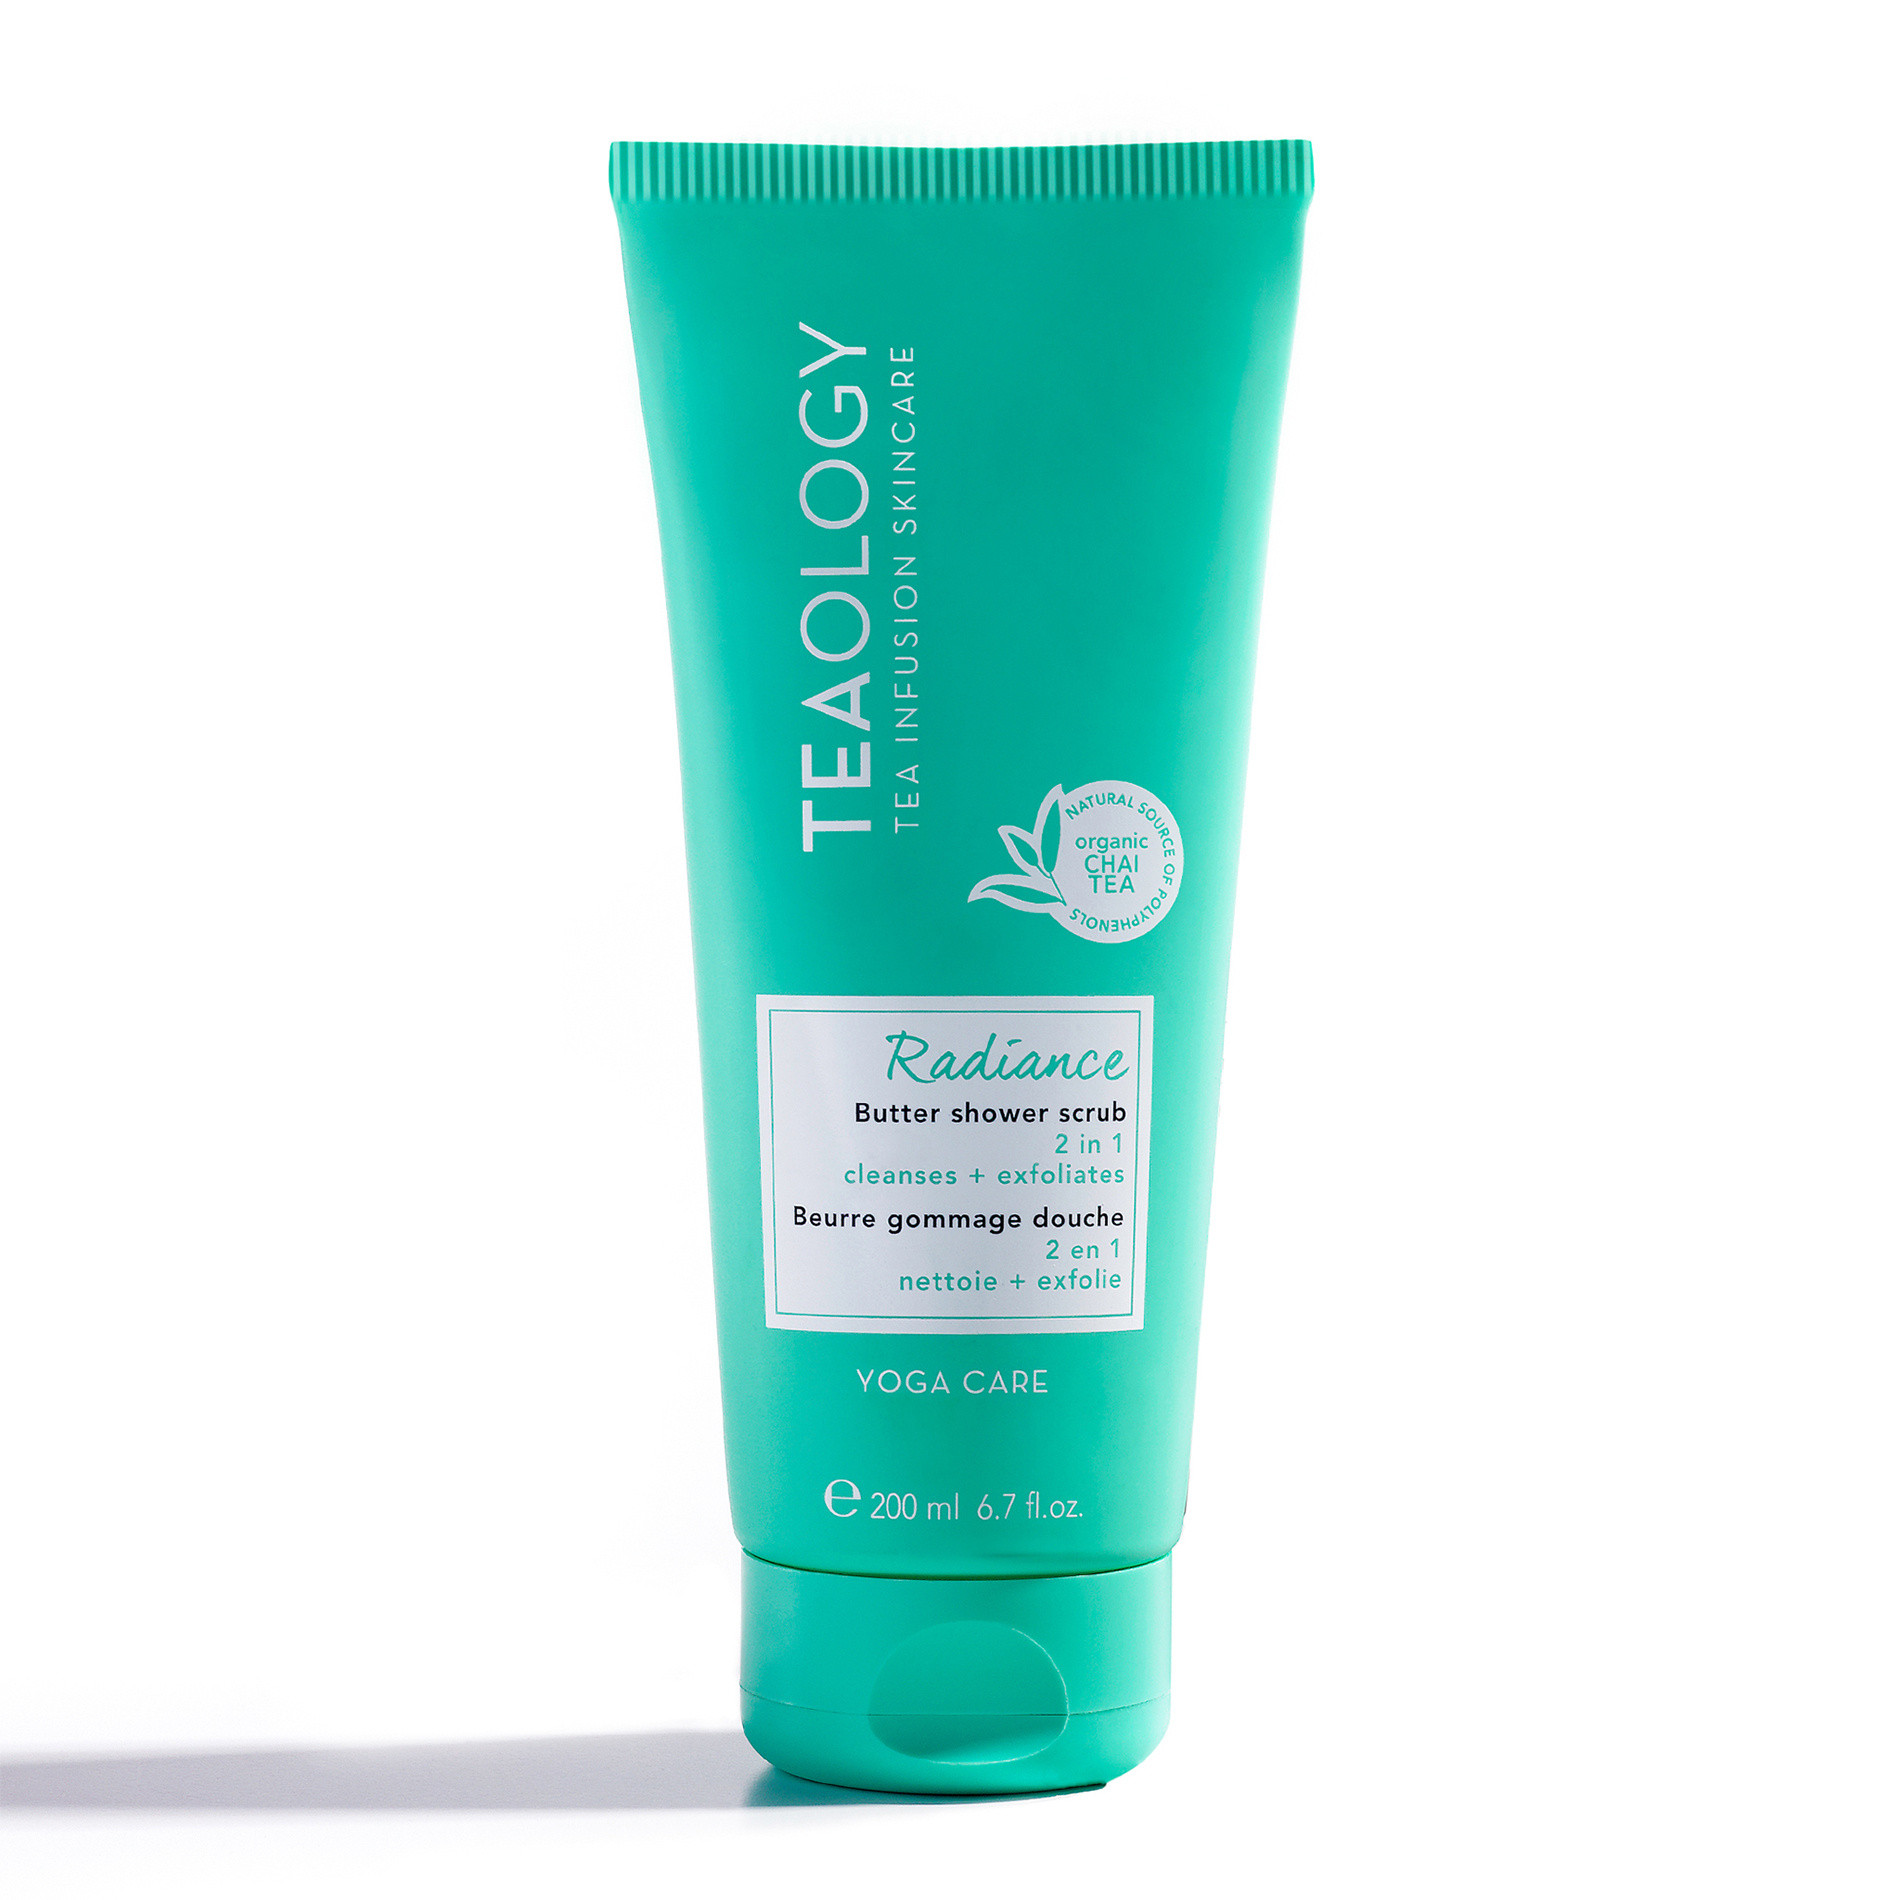 Teaology Radiance Butter Shower Scrub 200 ml, Azzurro, large image number 0